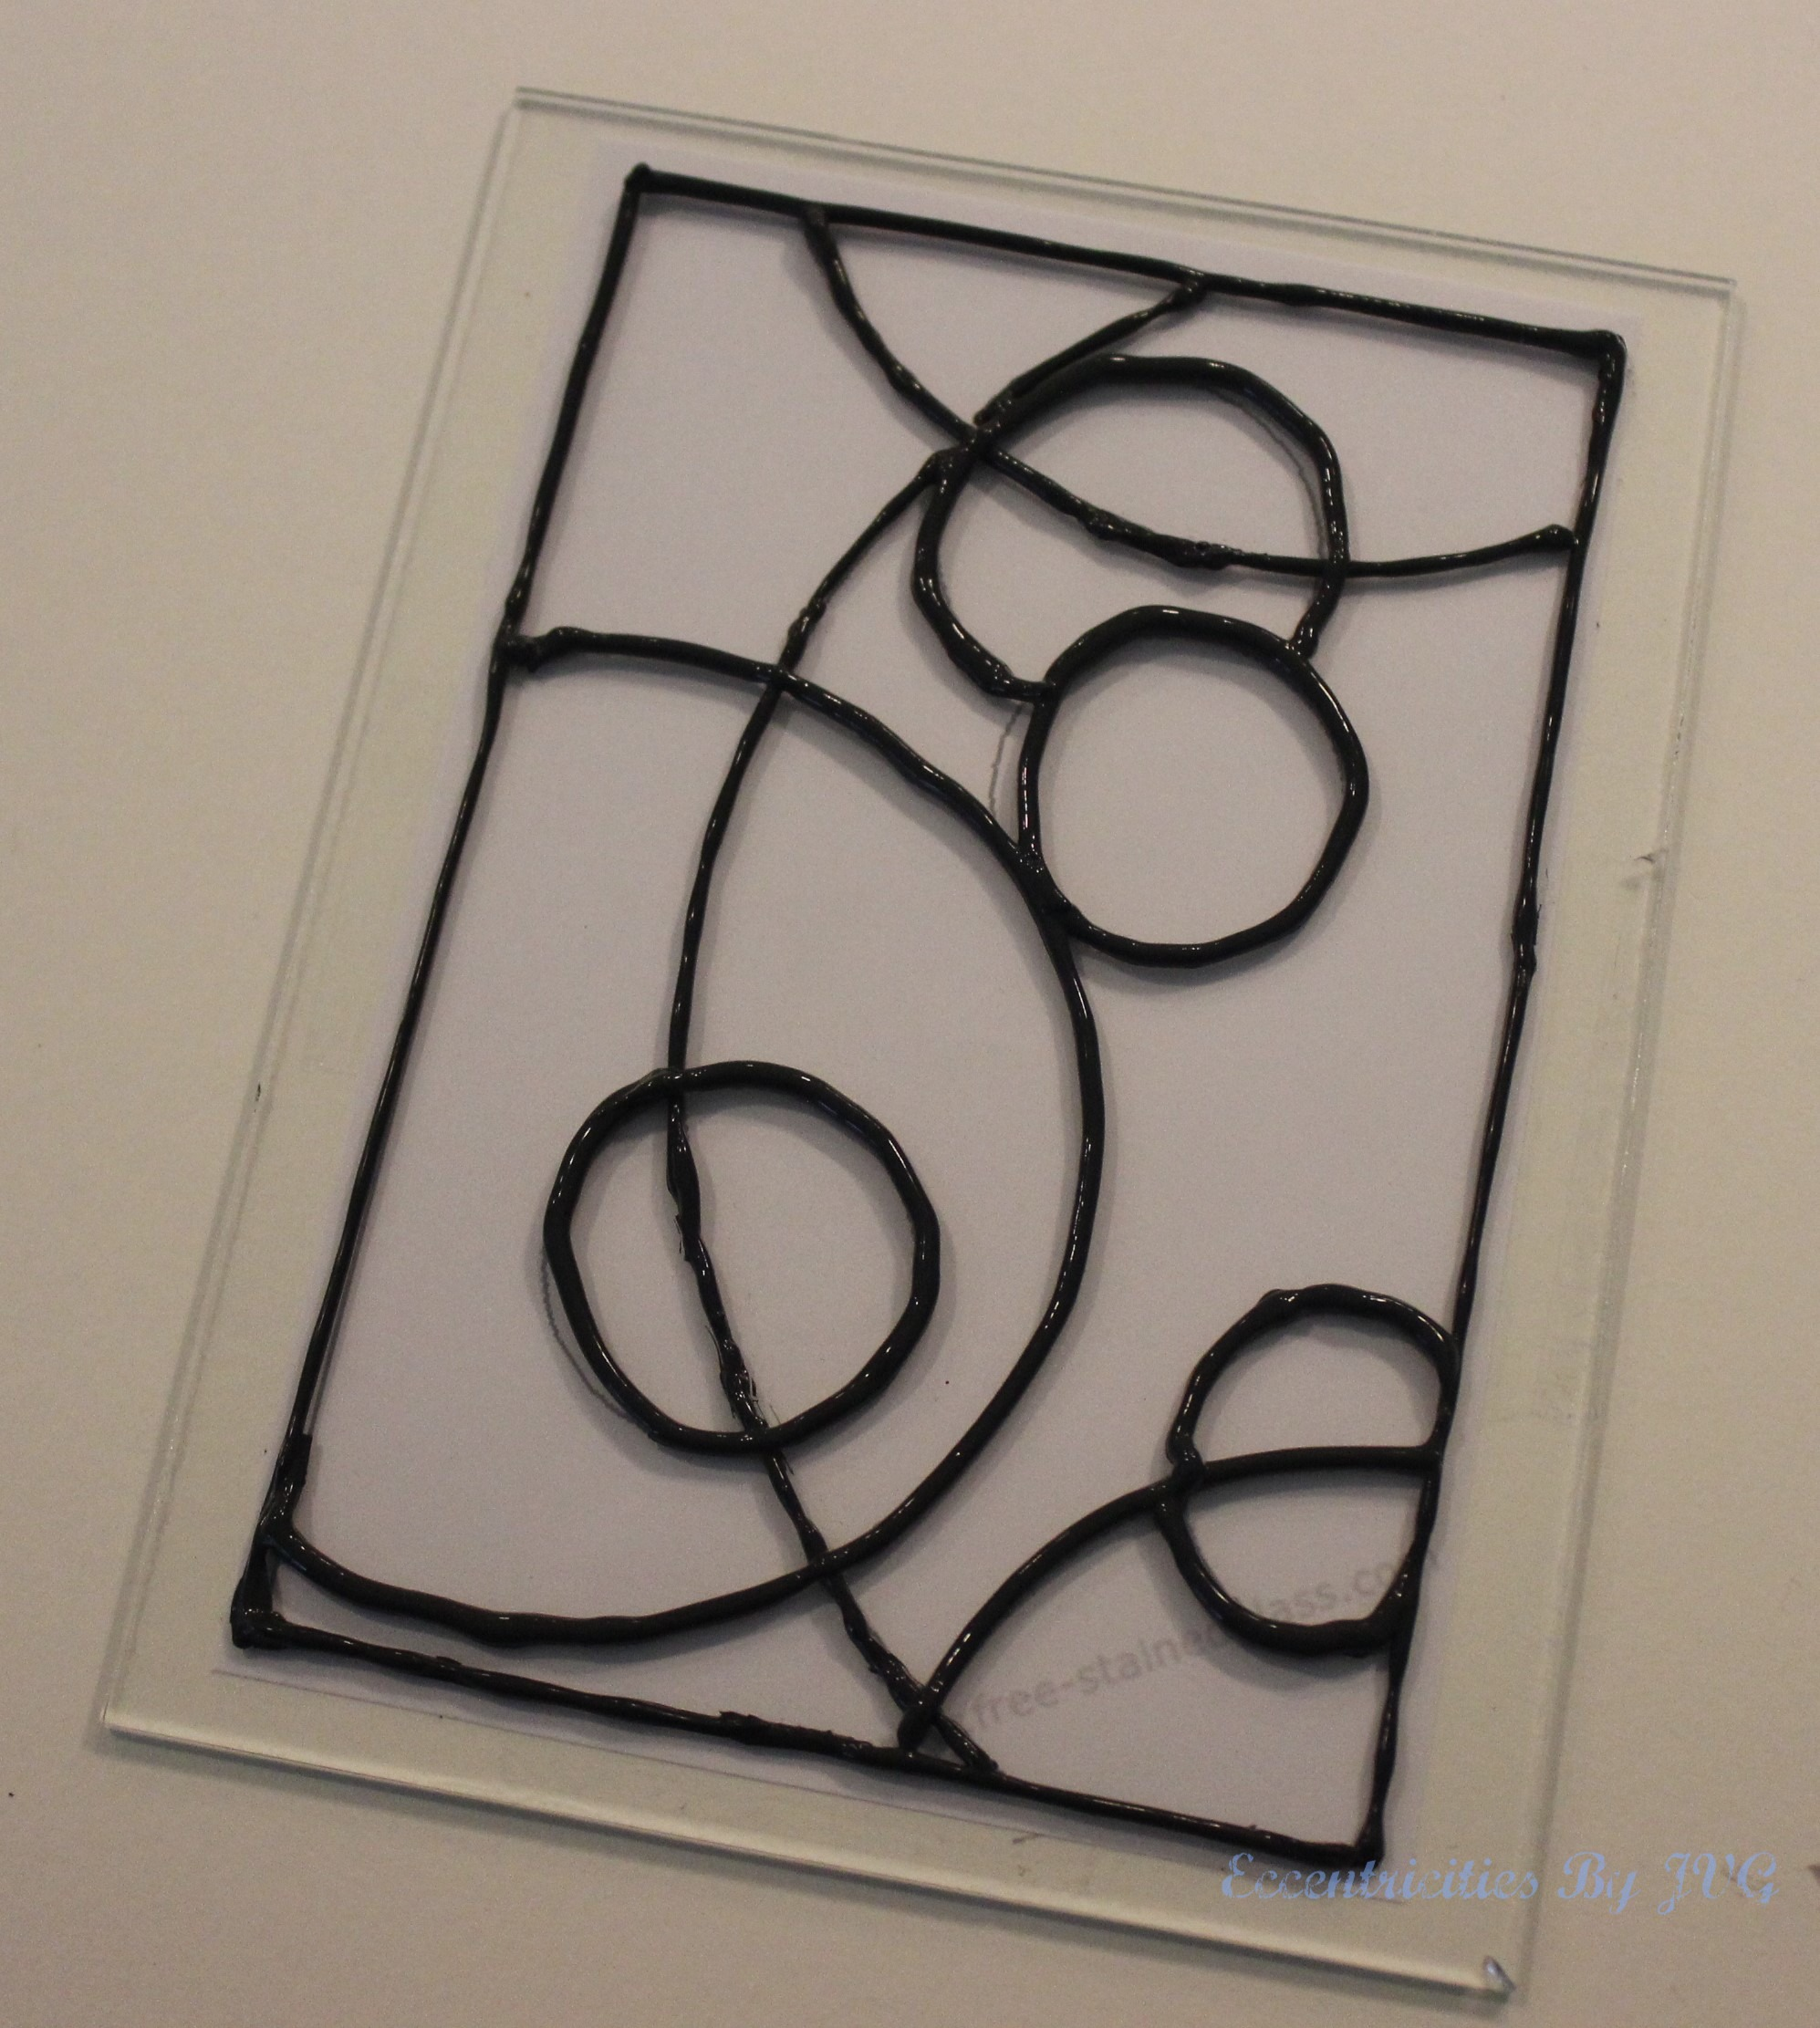 apply the leading to your stain glass art